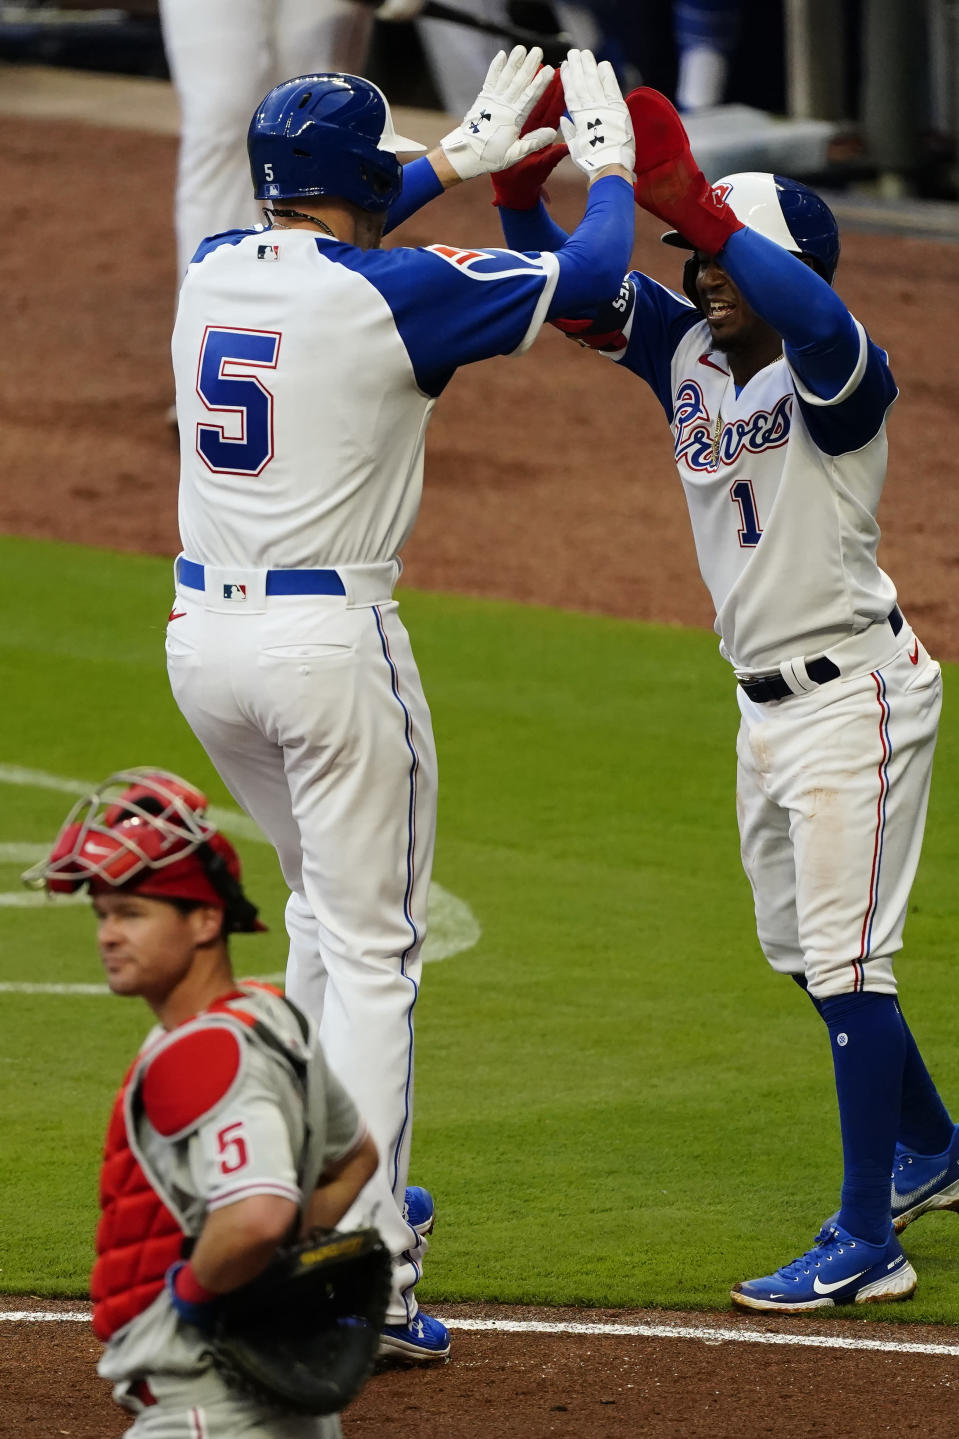 Atlanta Braves' Freddie Freeman (5) celebrates with Ozzie Albies after hitting a two-run home run in the first inning of a baseball game against the Philadelphia Phillies, Saturday, April 10, 2021, in Atlanta. Phillies catcher Andrew Knapp (5) looks on. (AP Photo/John Bazemore)